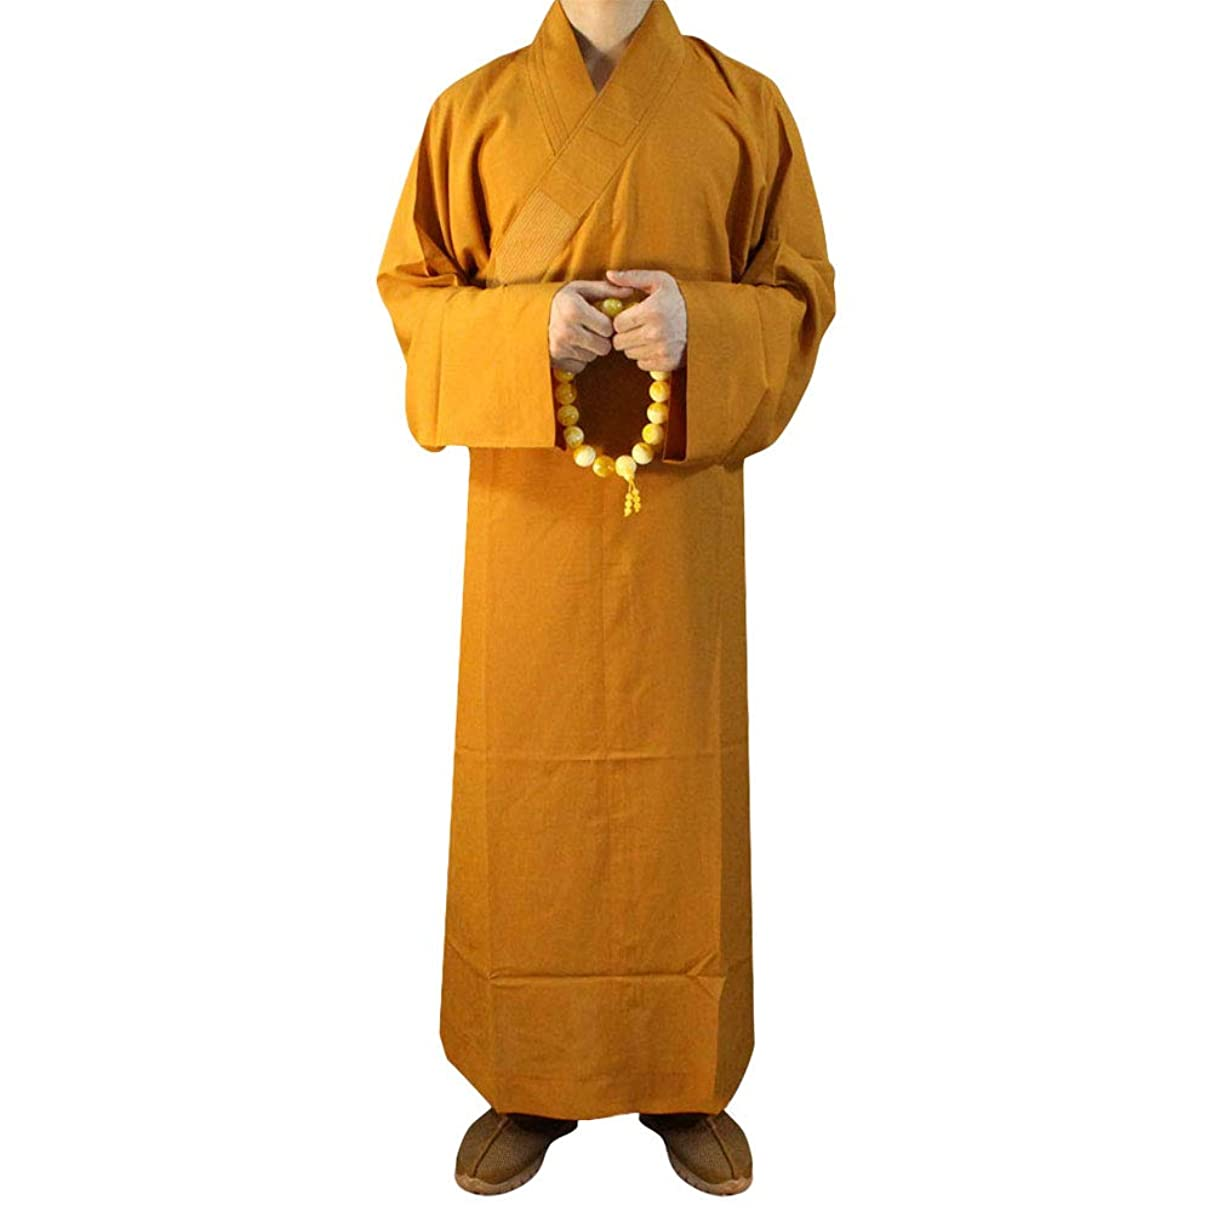 ZooBoo Summer Buddhist Shaolin Monk Robe Cotton Linen Long Robes Gown Kung Fu Uniforms Martial Arts Clothing